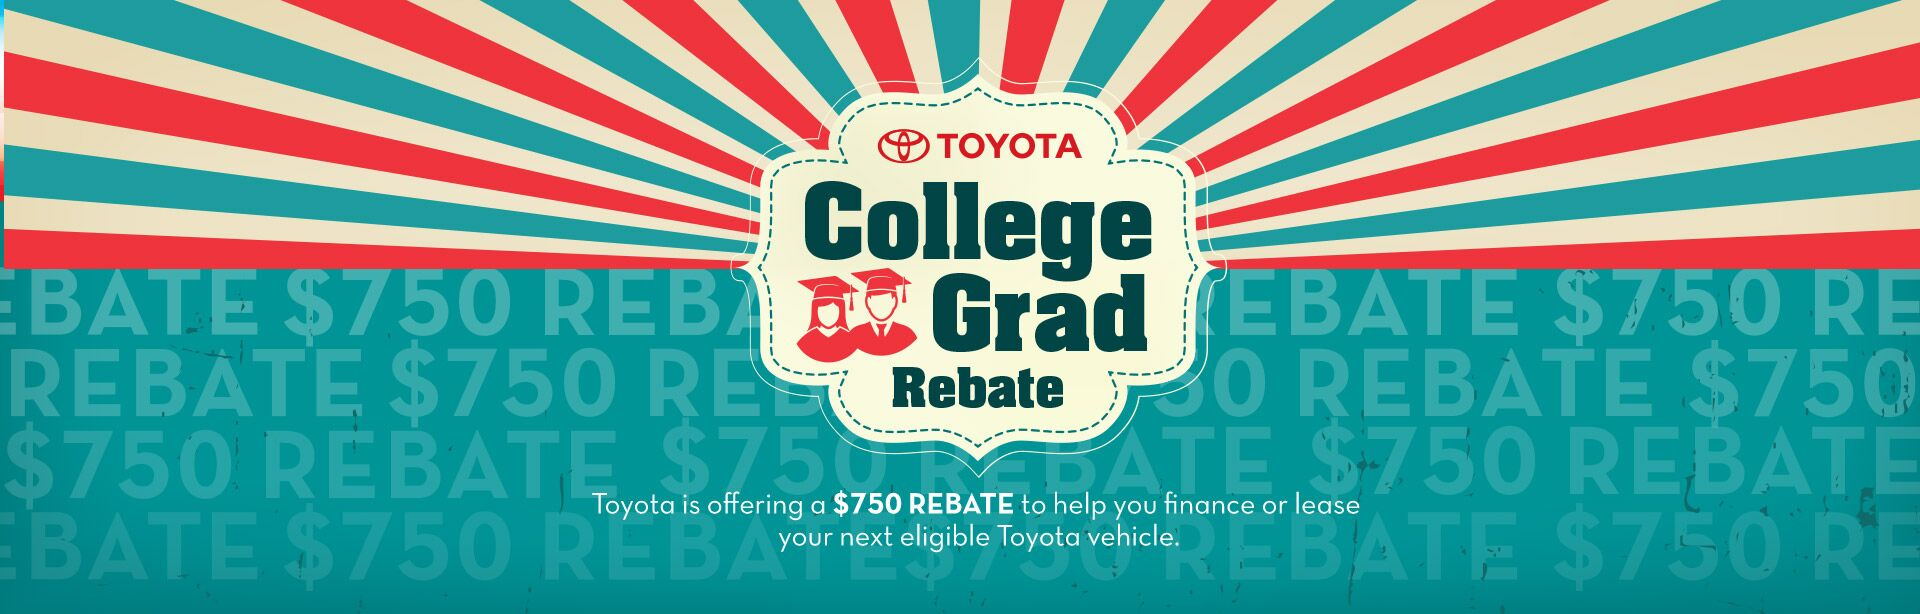 College Rebate Program